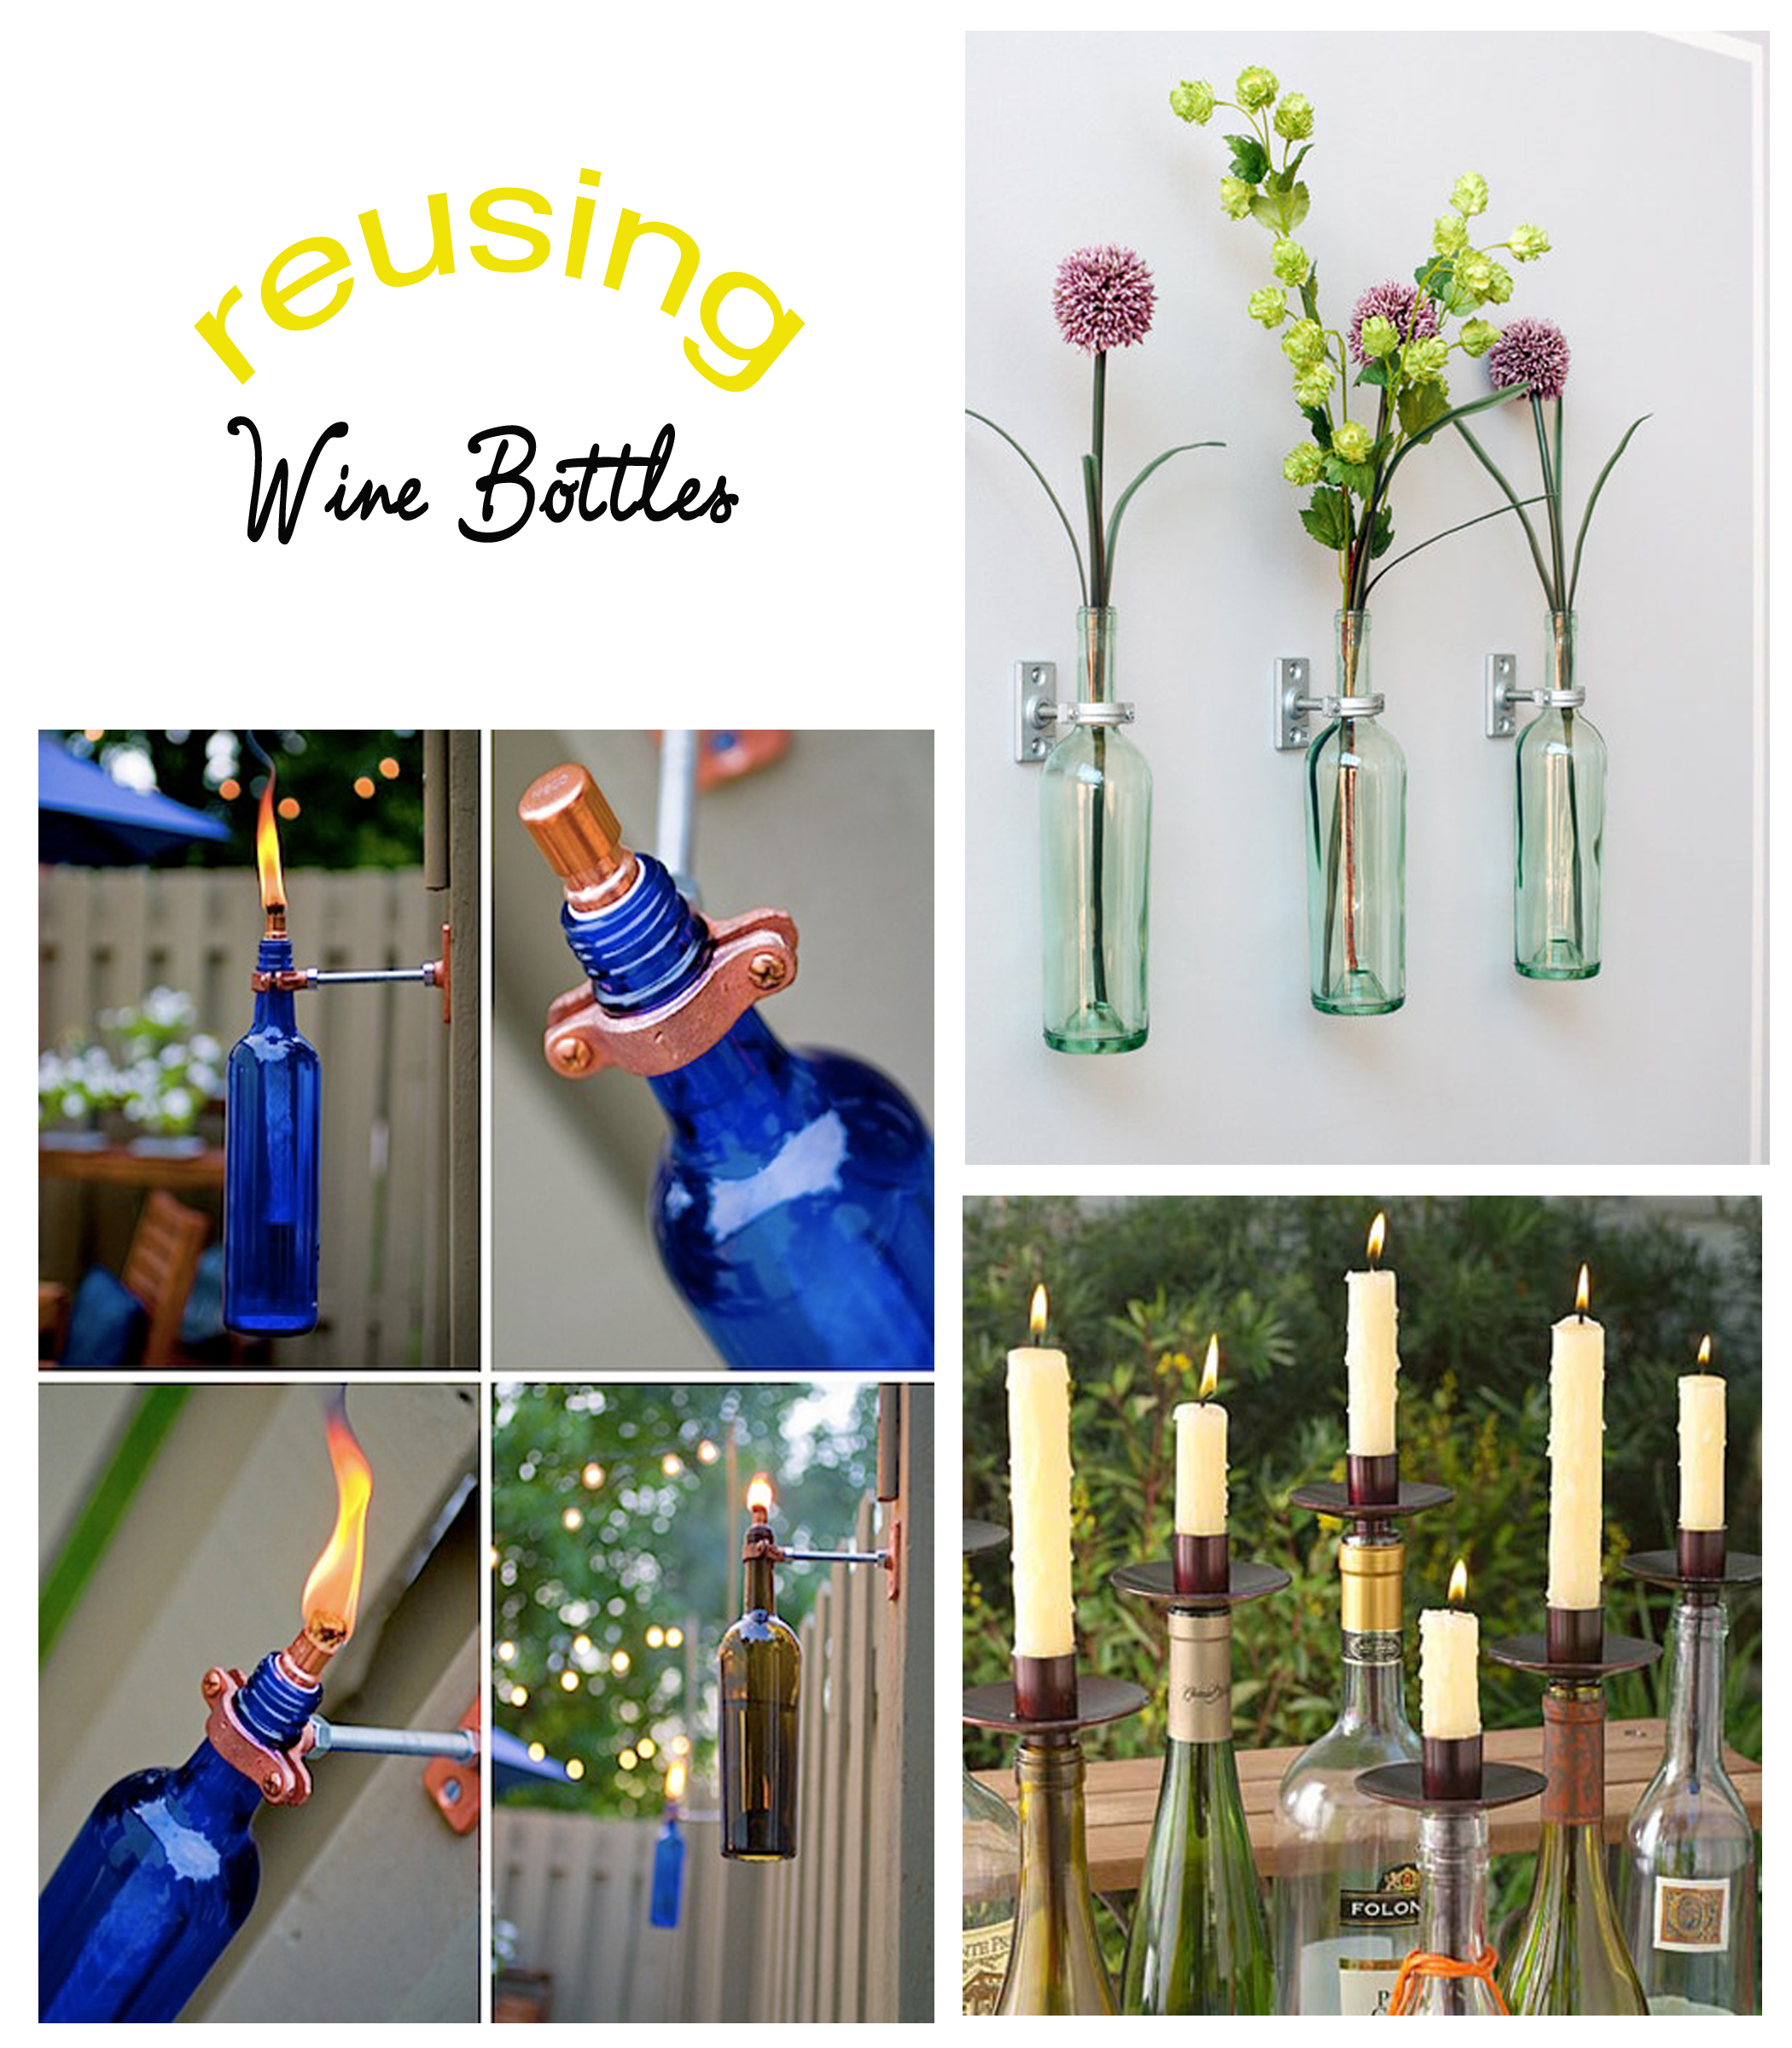 Reusing wine bottles bewhatwelove for Recycling wine bottles creatively